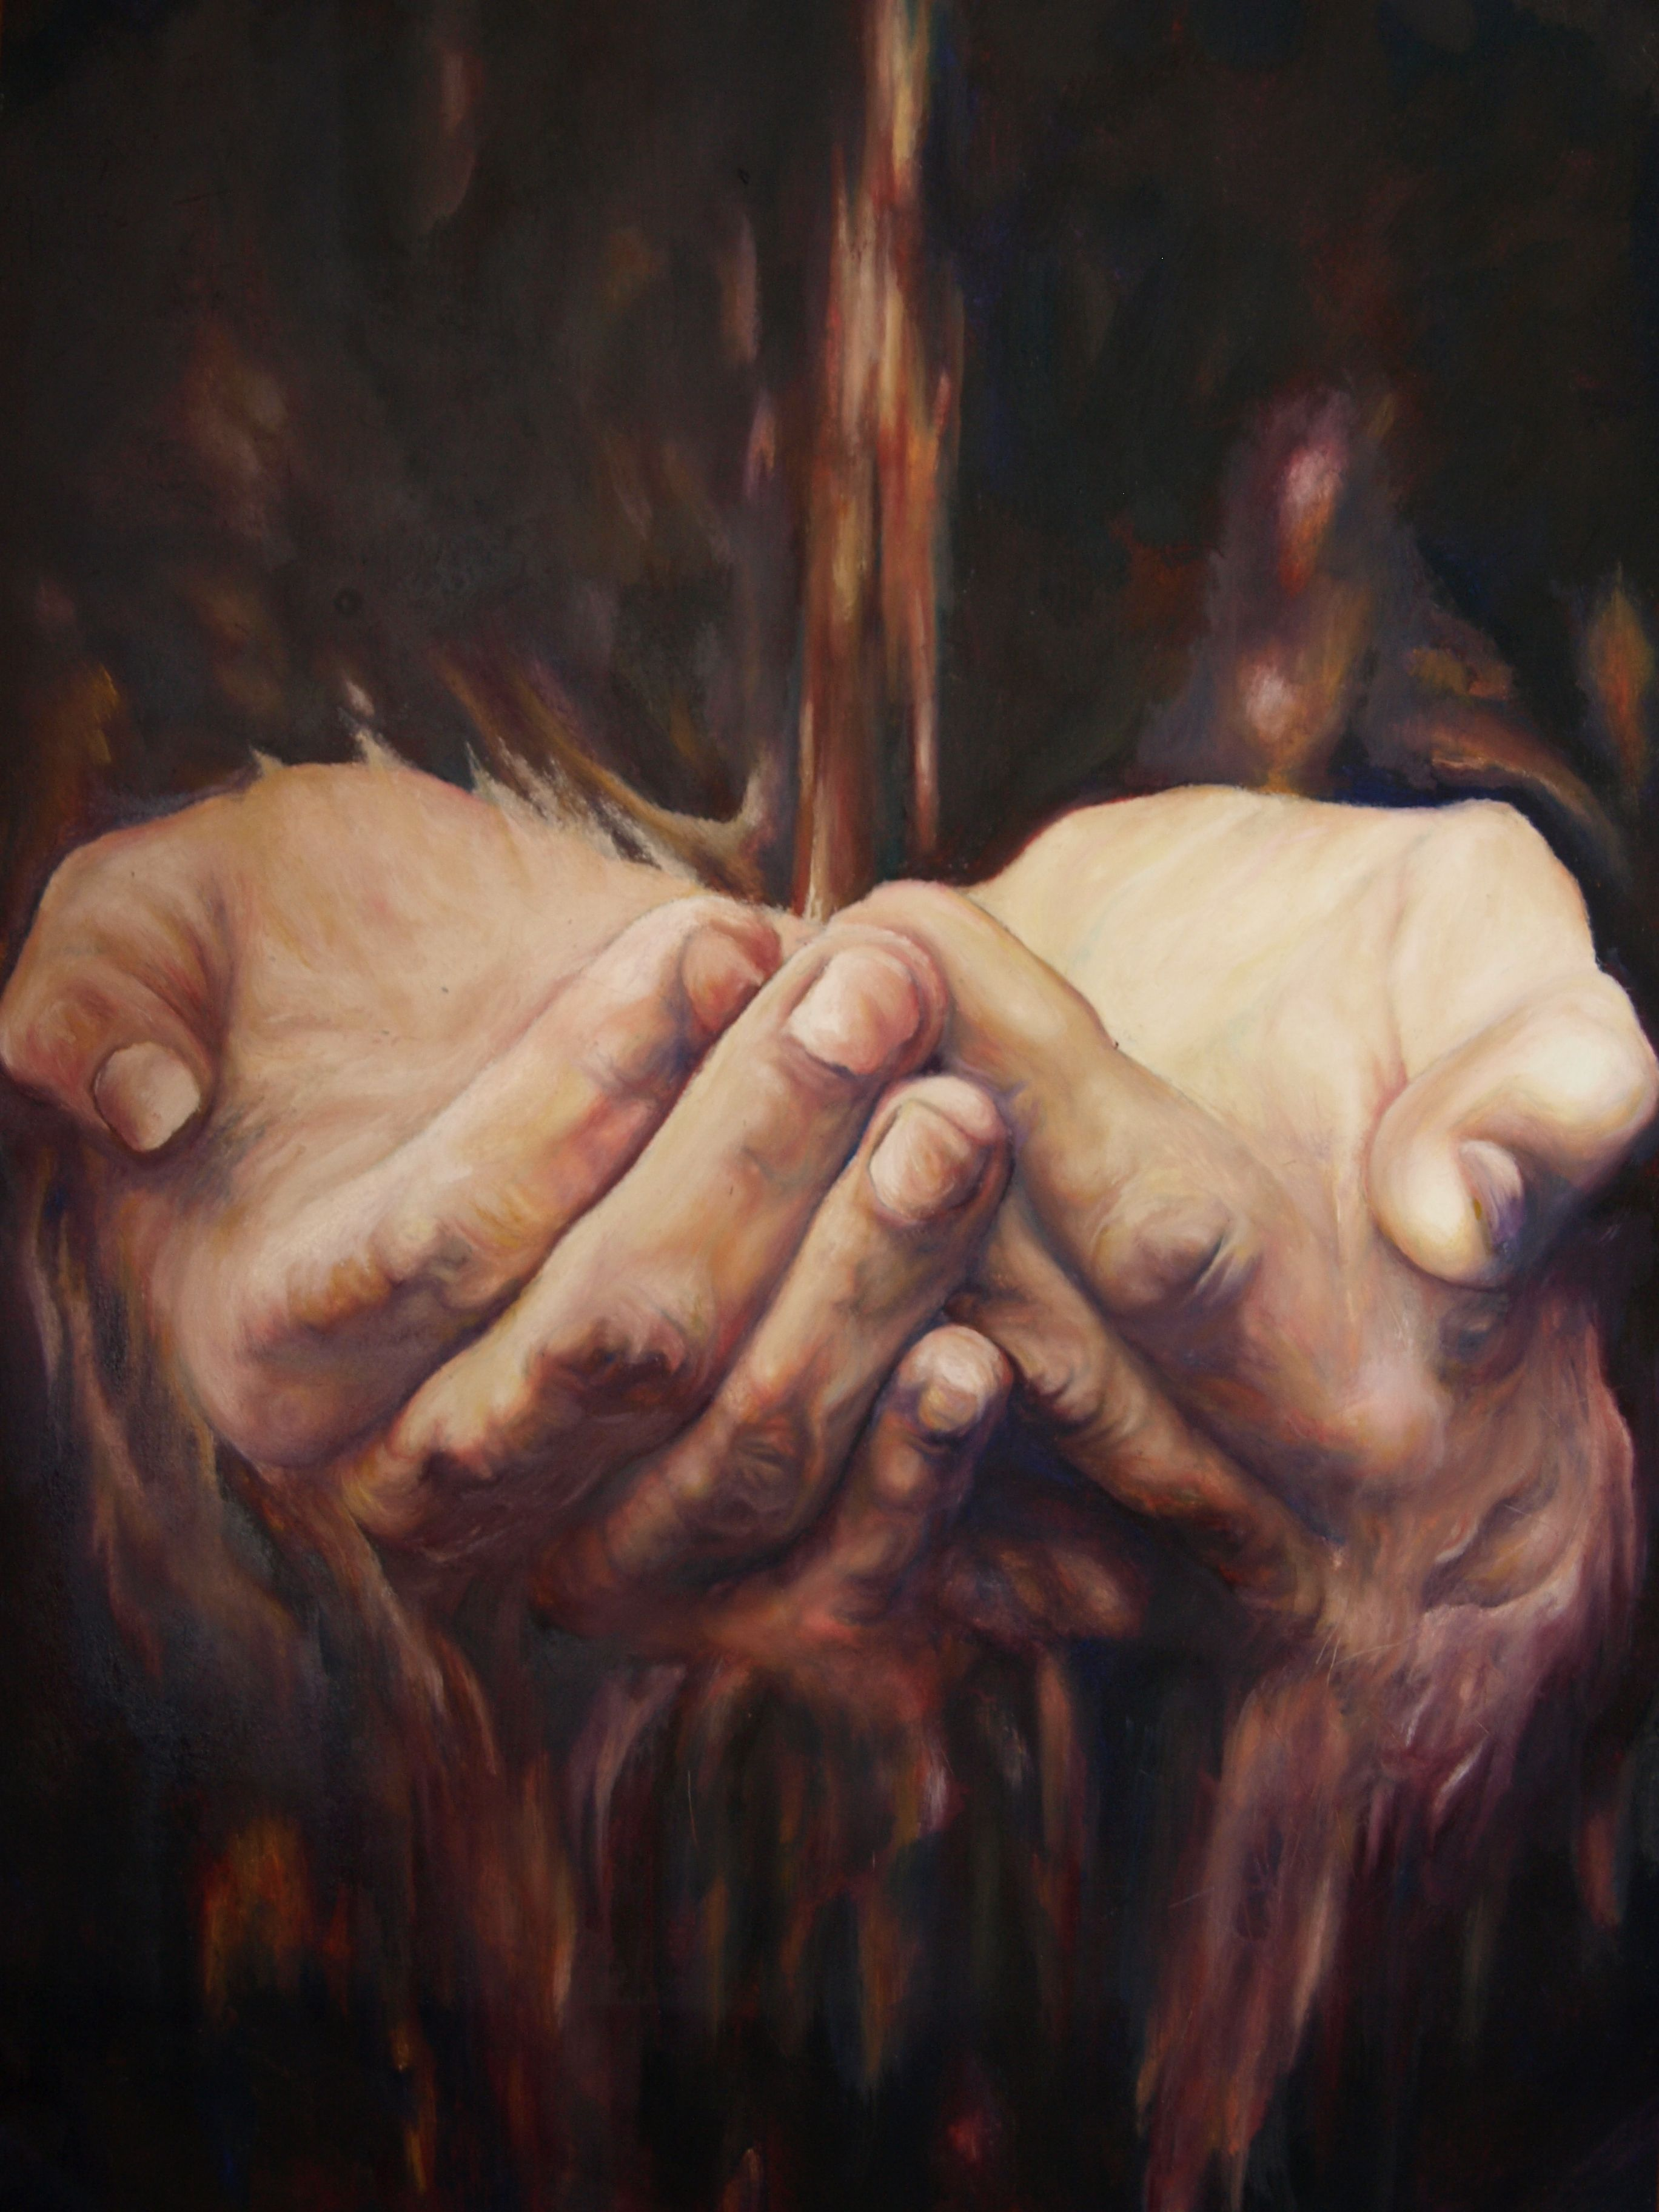 paintings of hands - Google Search | Art techniques, Painting, Artist inspiration